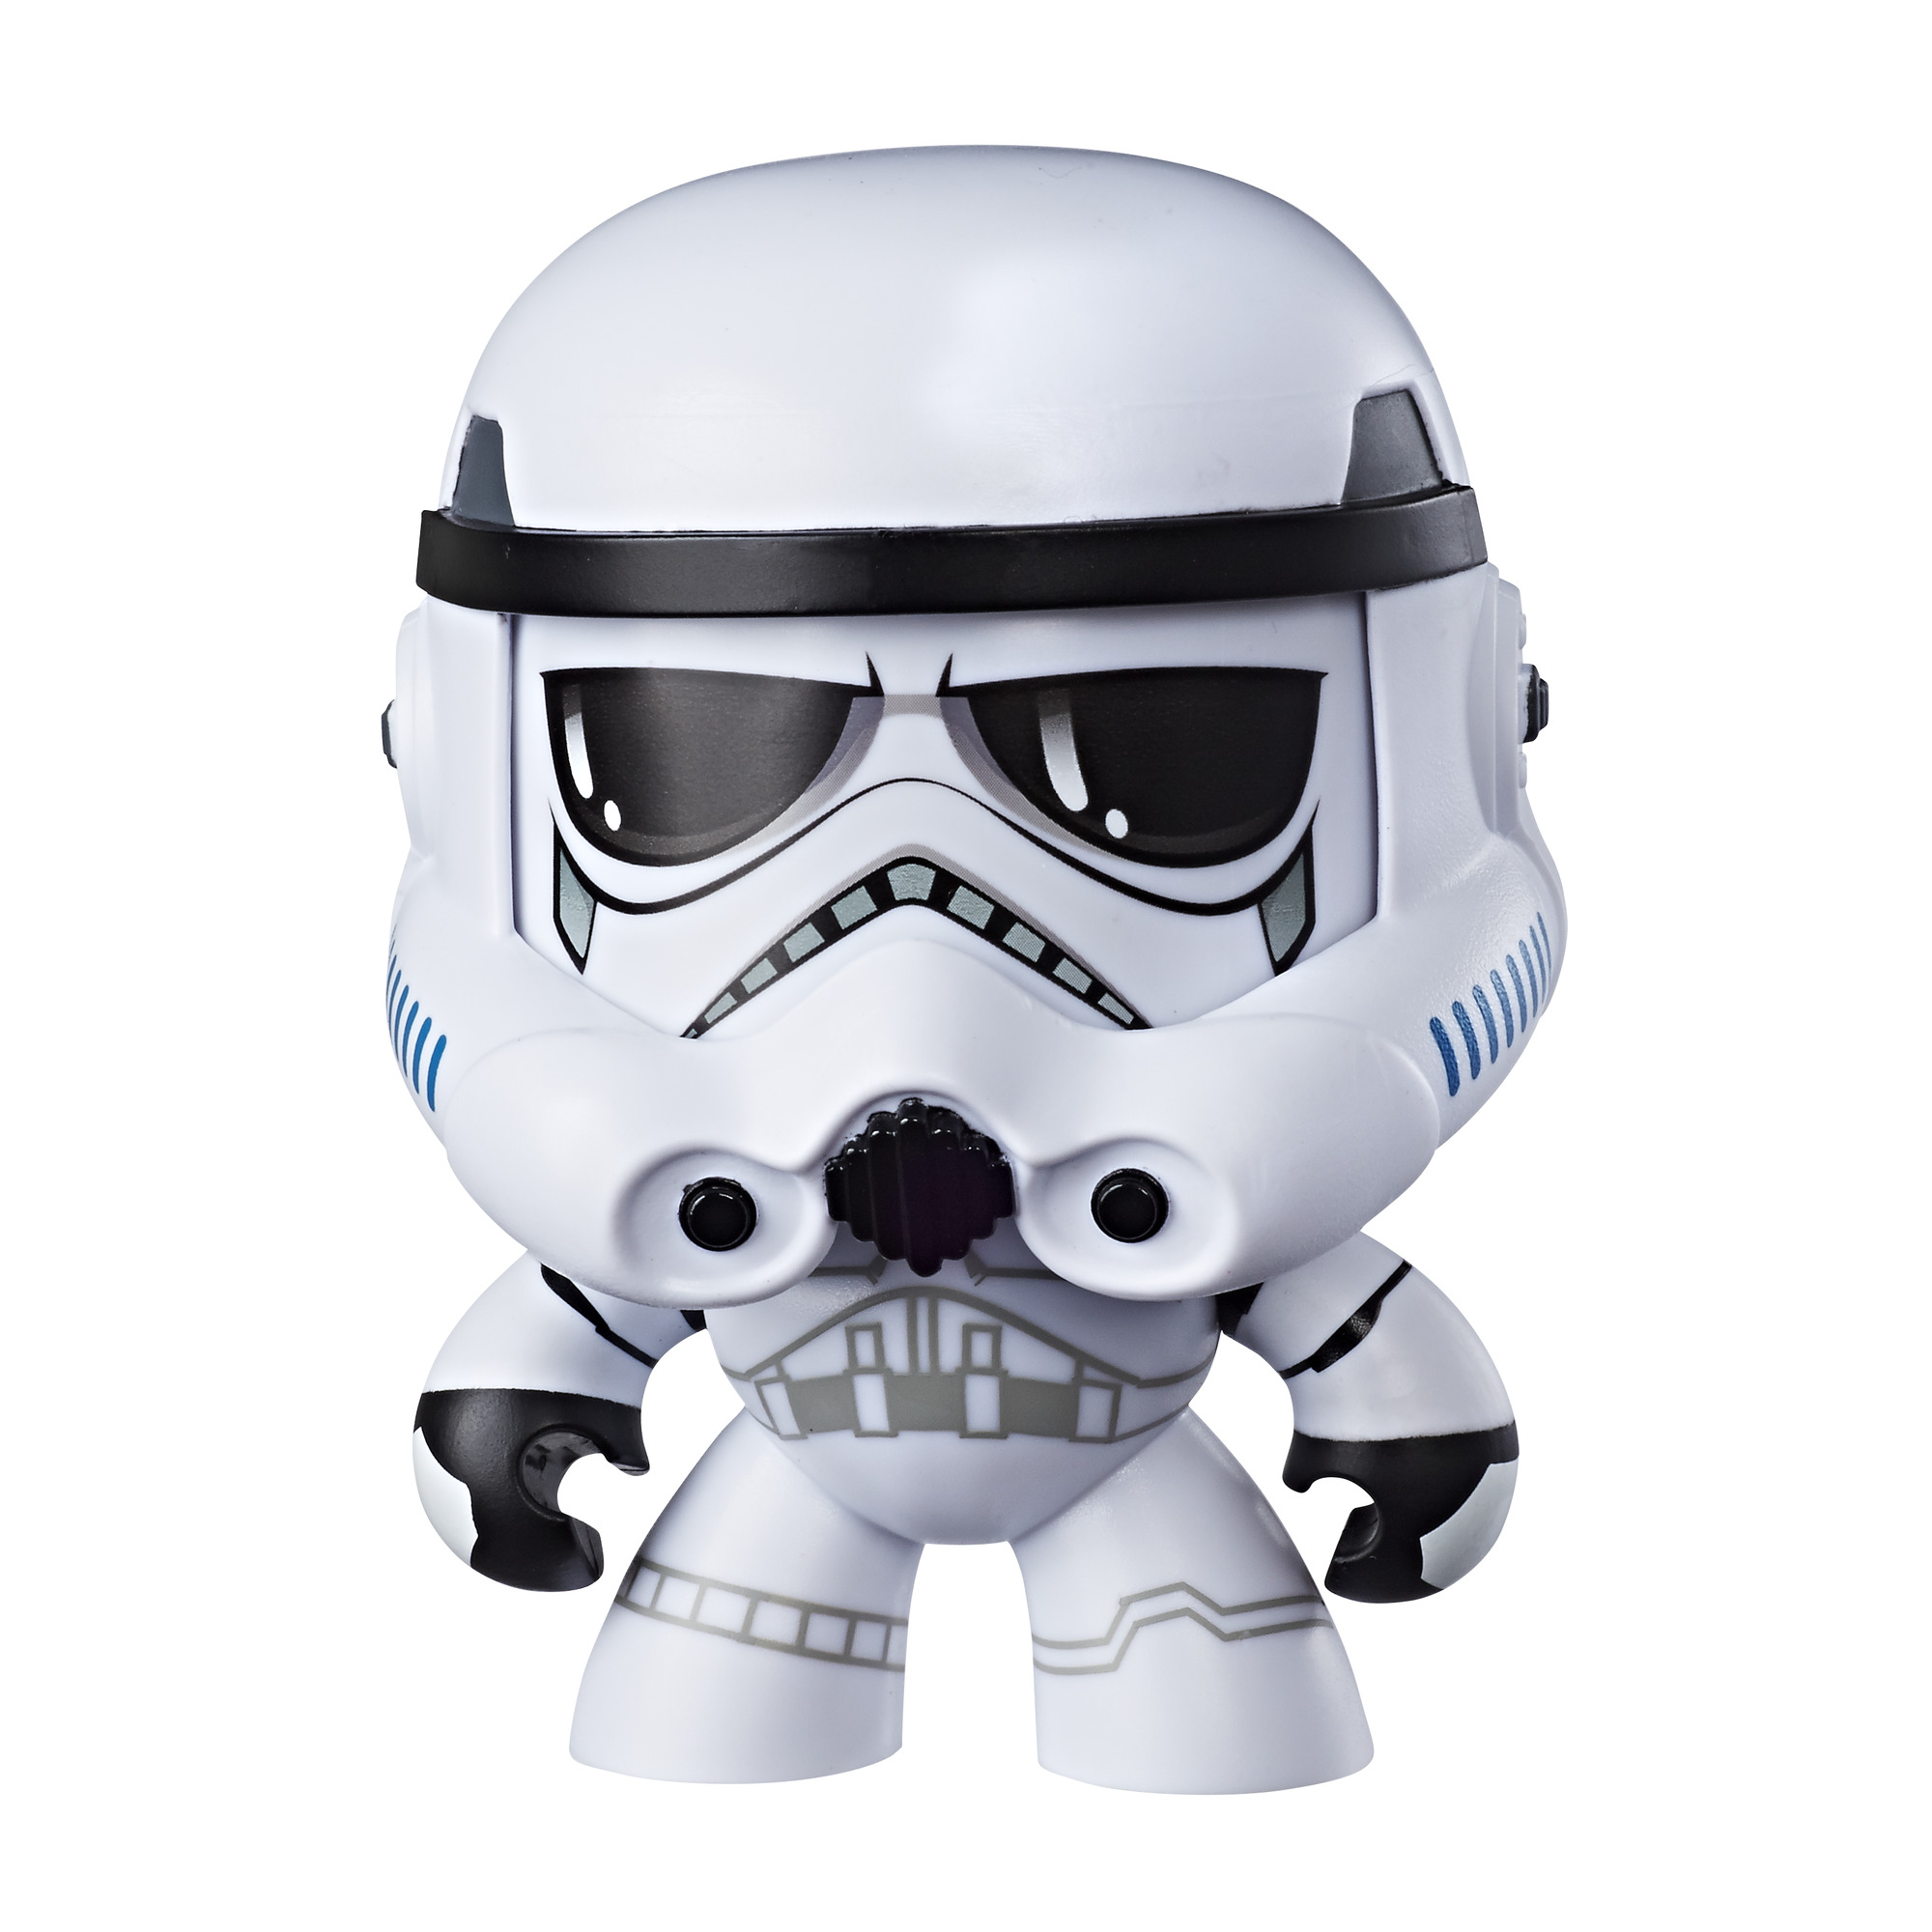 Solo: ASWS Imperial Stormtrooper Mighty Muggs Figure 2